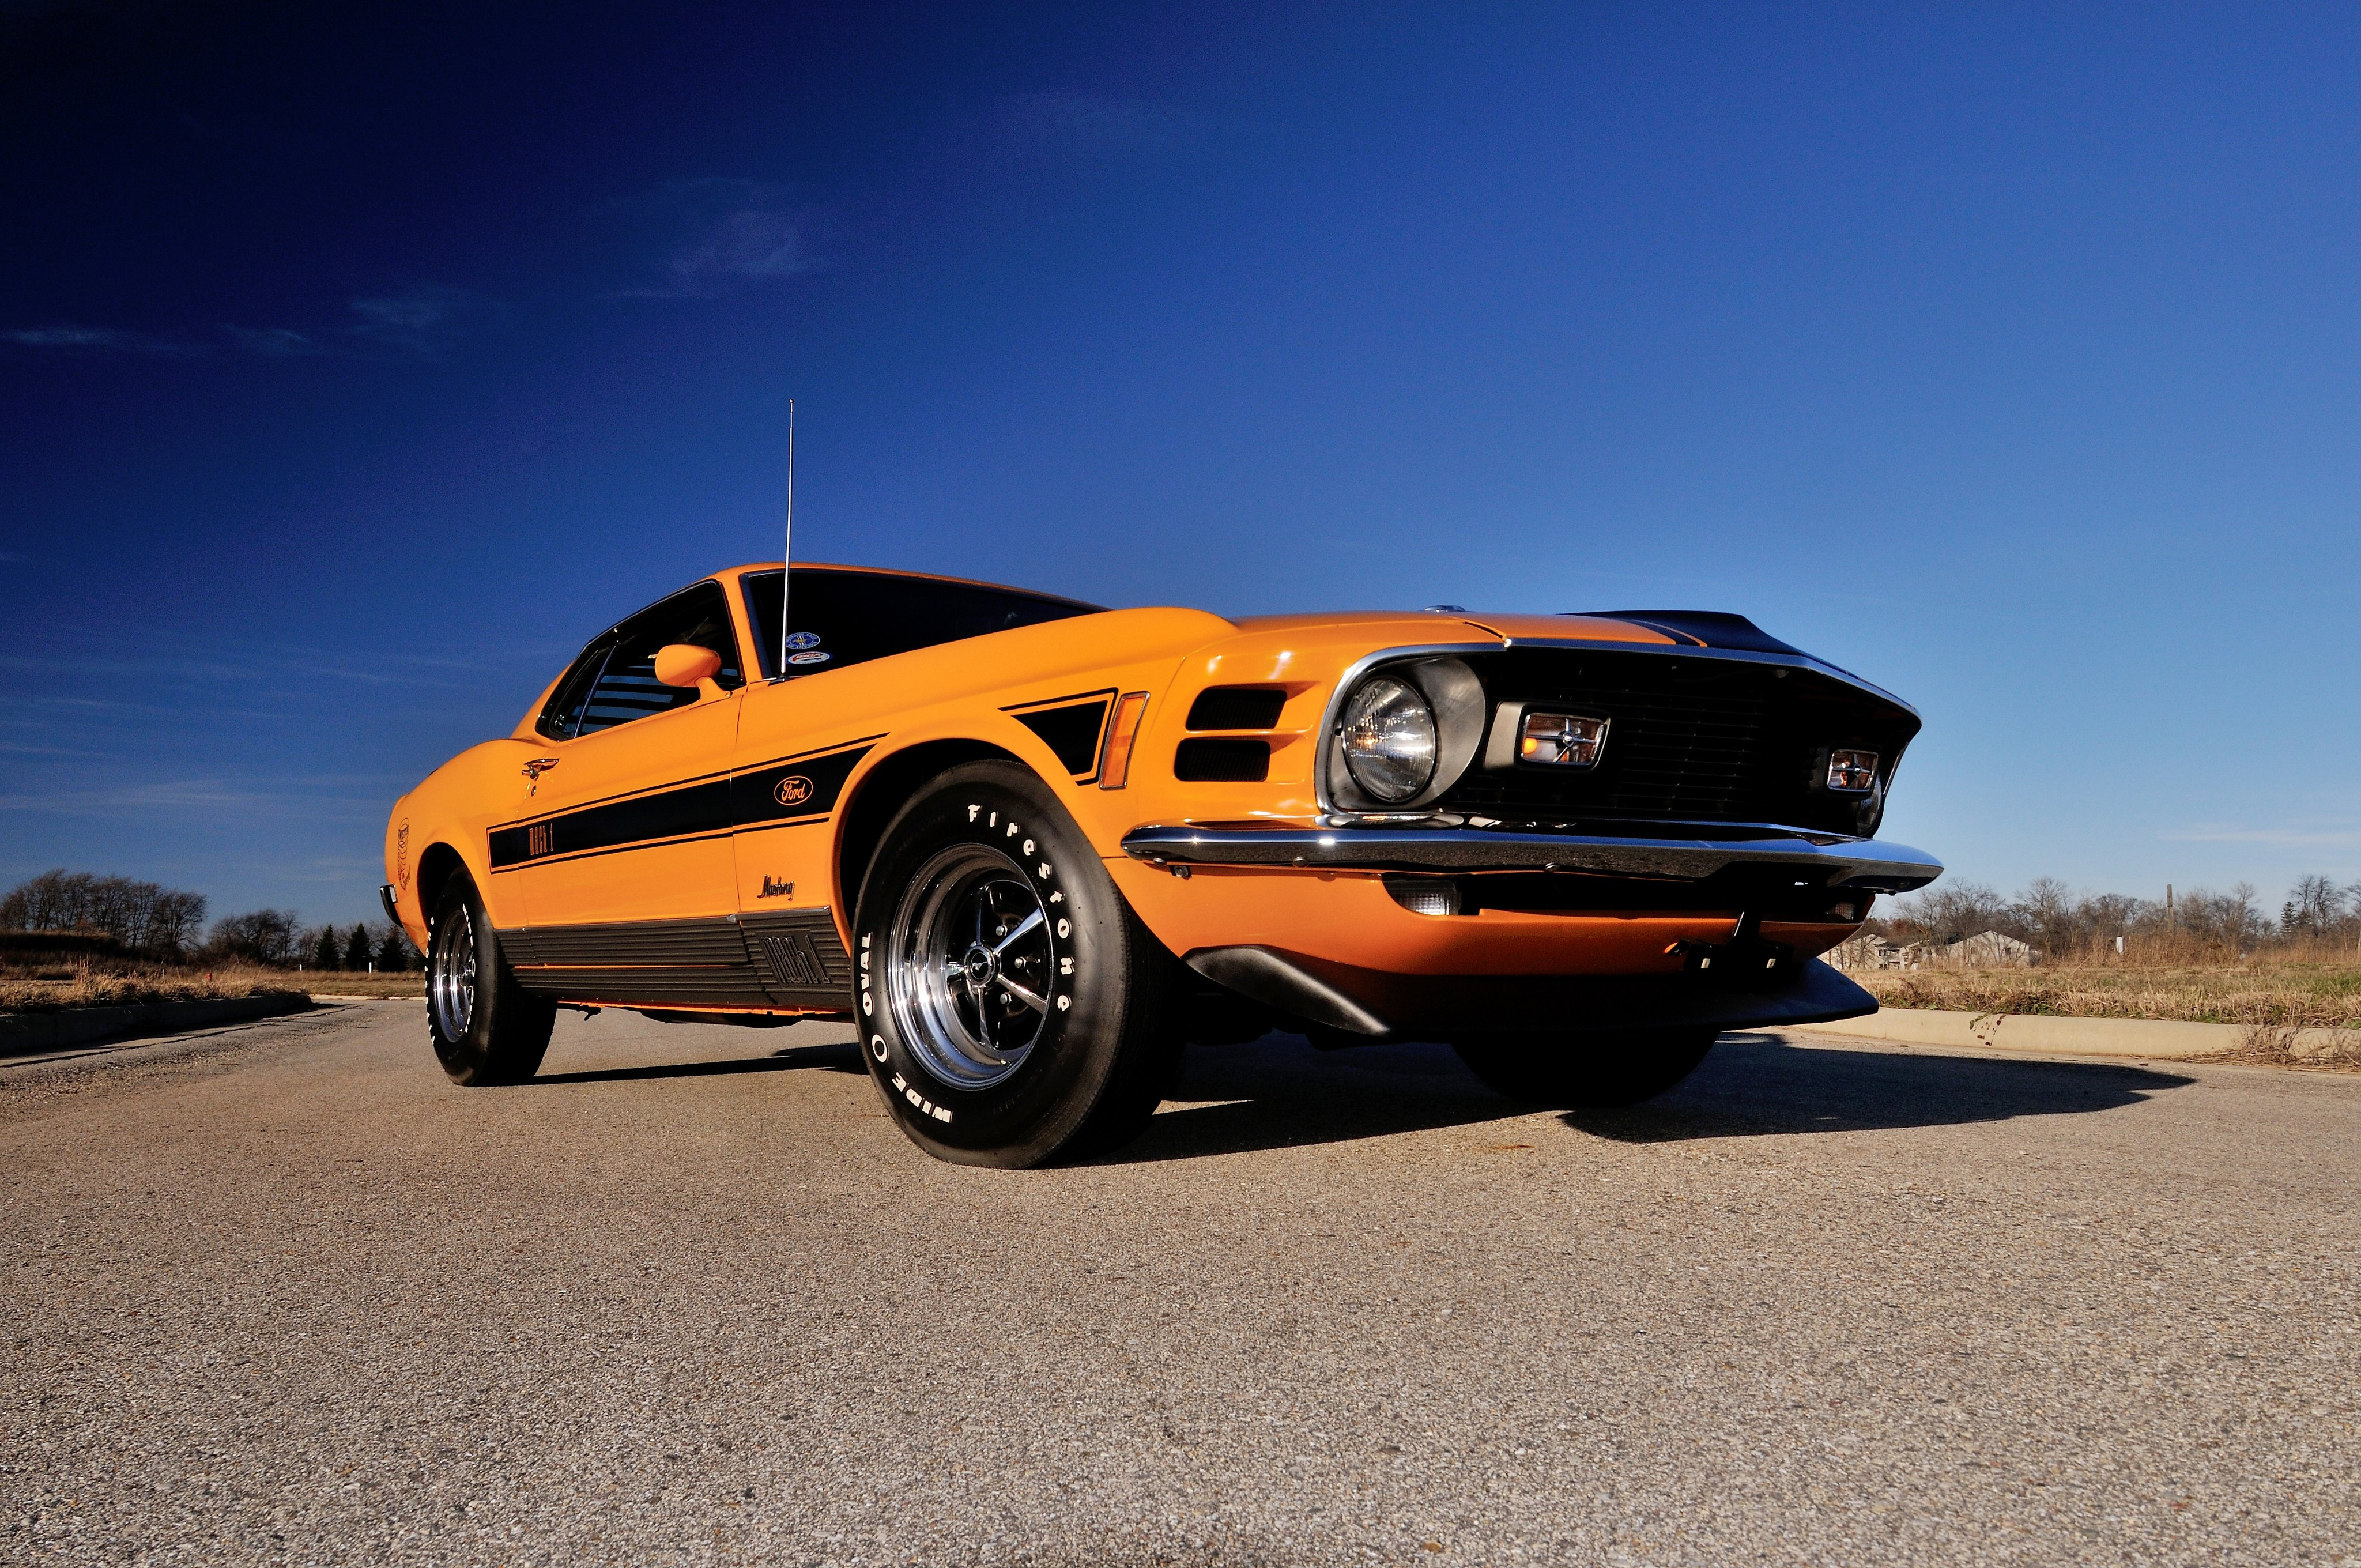 1970 ford mustang mach 1 428 super cobra jet twister muscle classic wallpaper 4096x2720 516271 wallpaperup